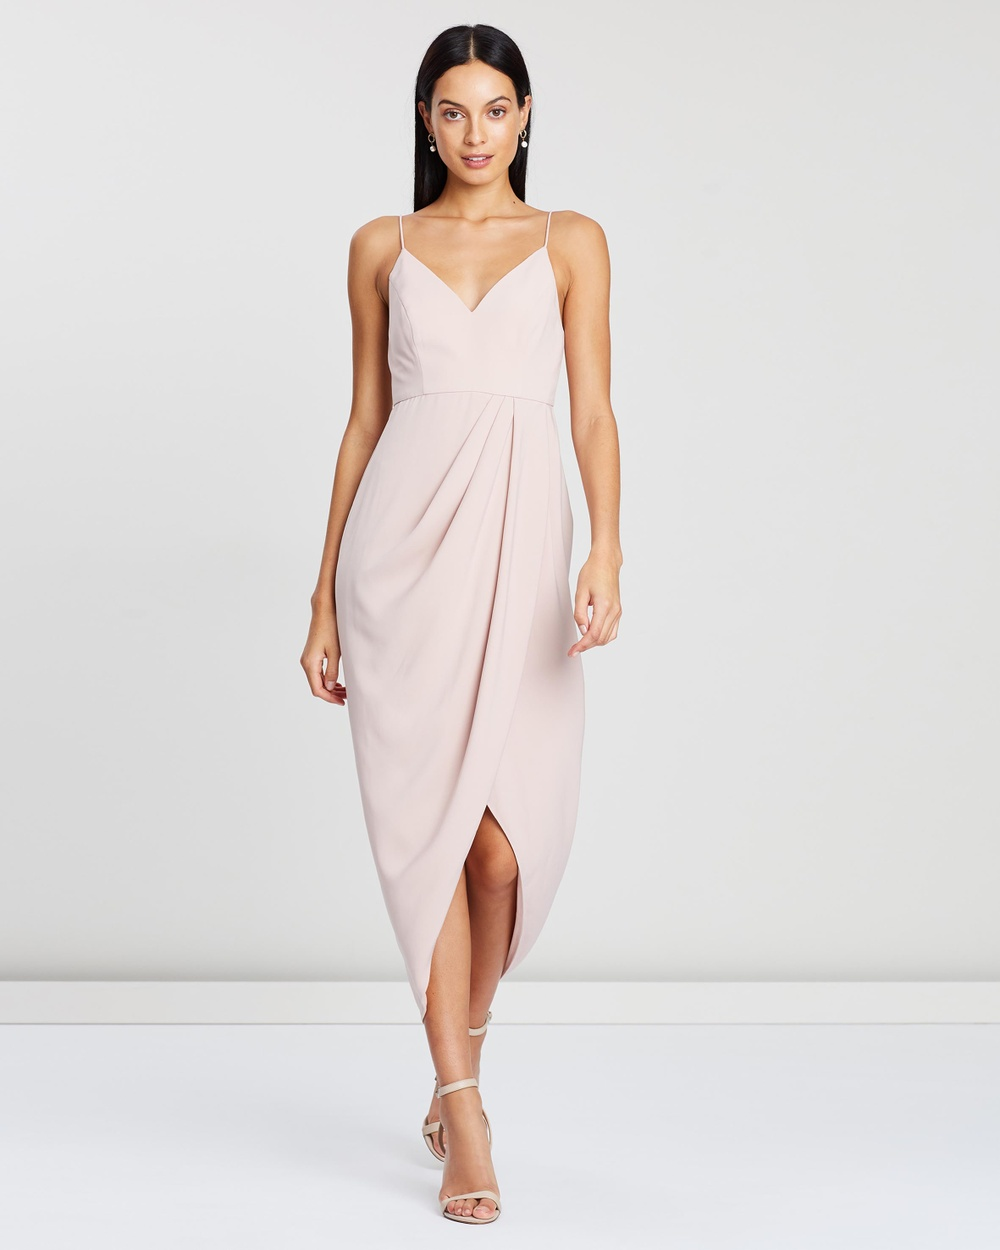 Shona Joy Cocktail Draped Maxi Dress Bridesmaid Dresses Ballet Cocktail Draped Maxi Dress